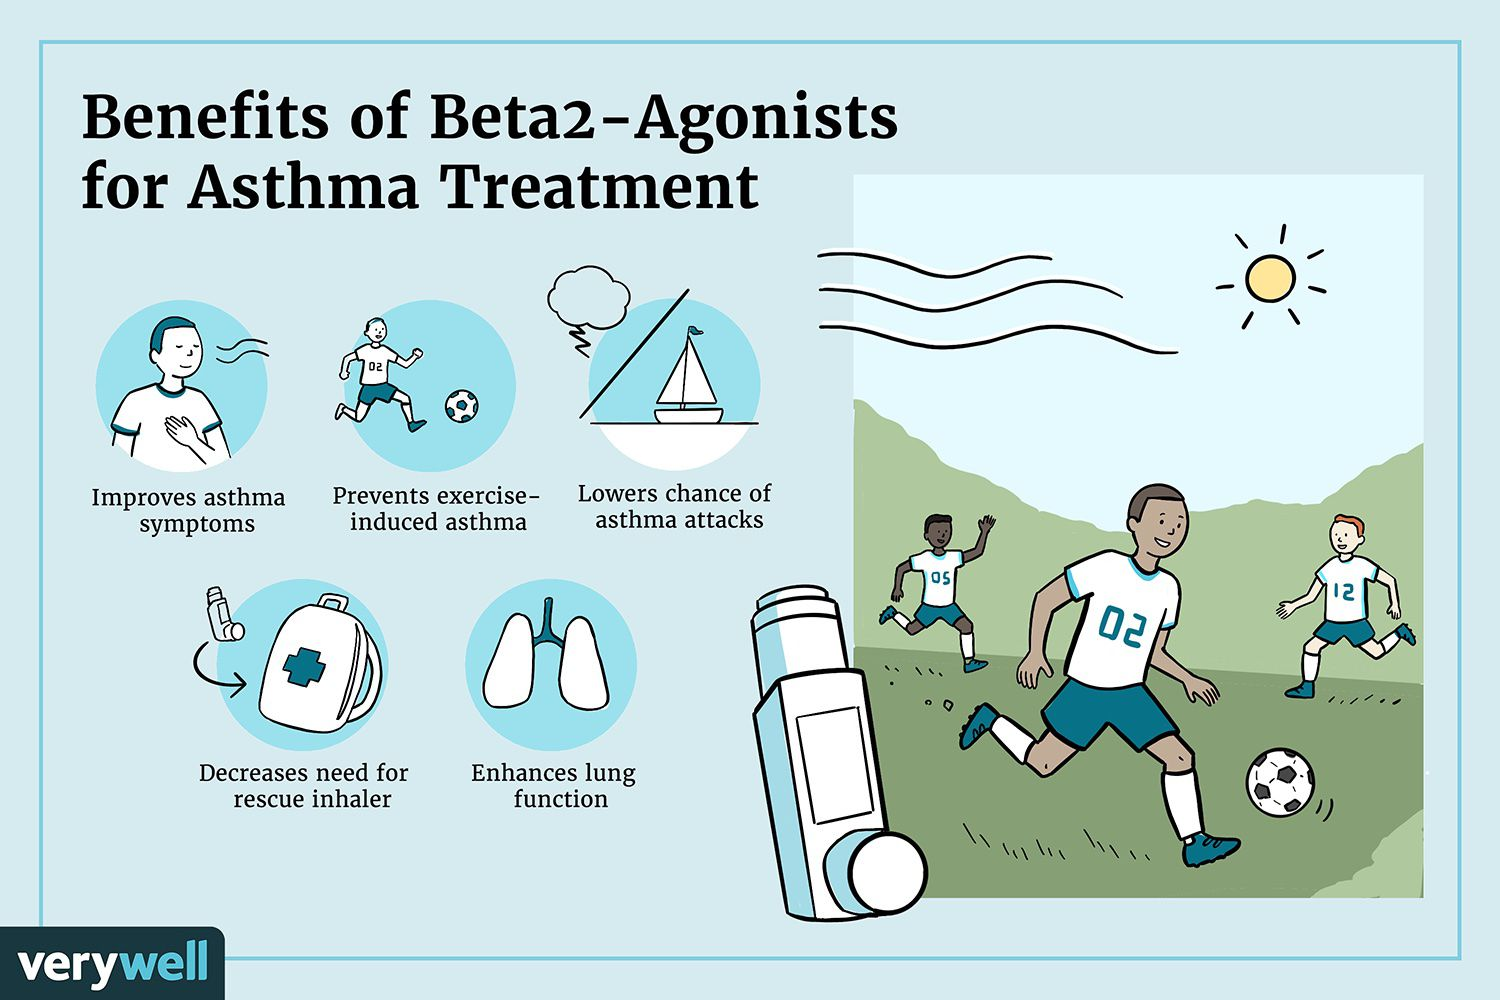 Benefits of Beta2-Agonists for Asthma Treatment